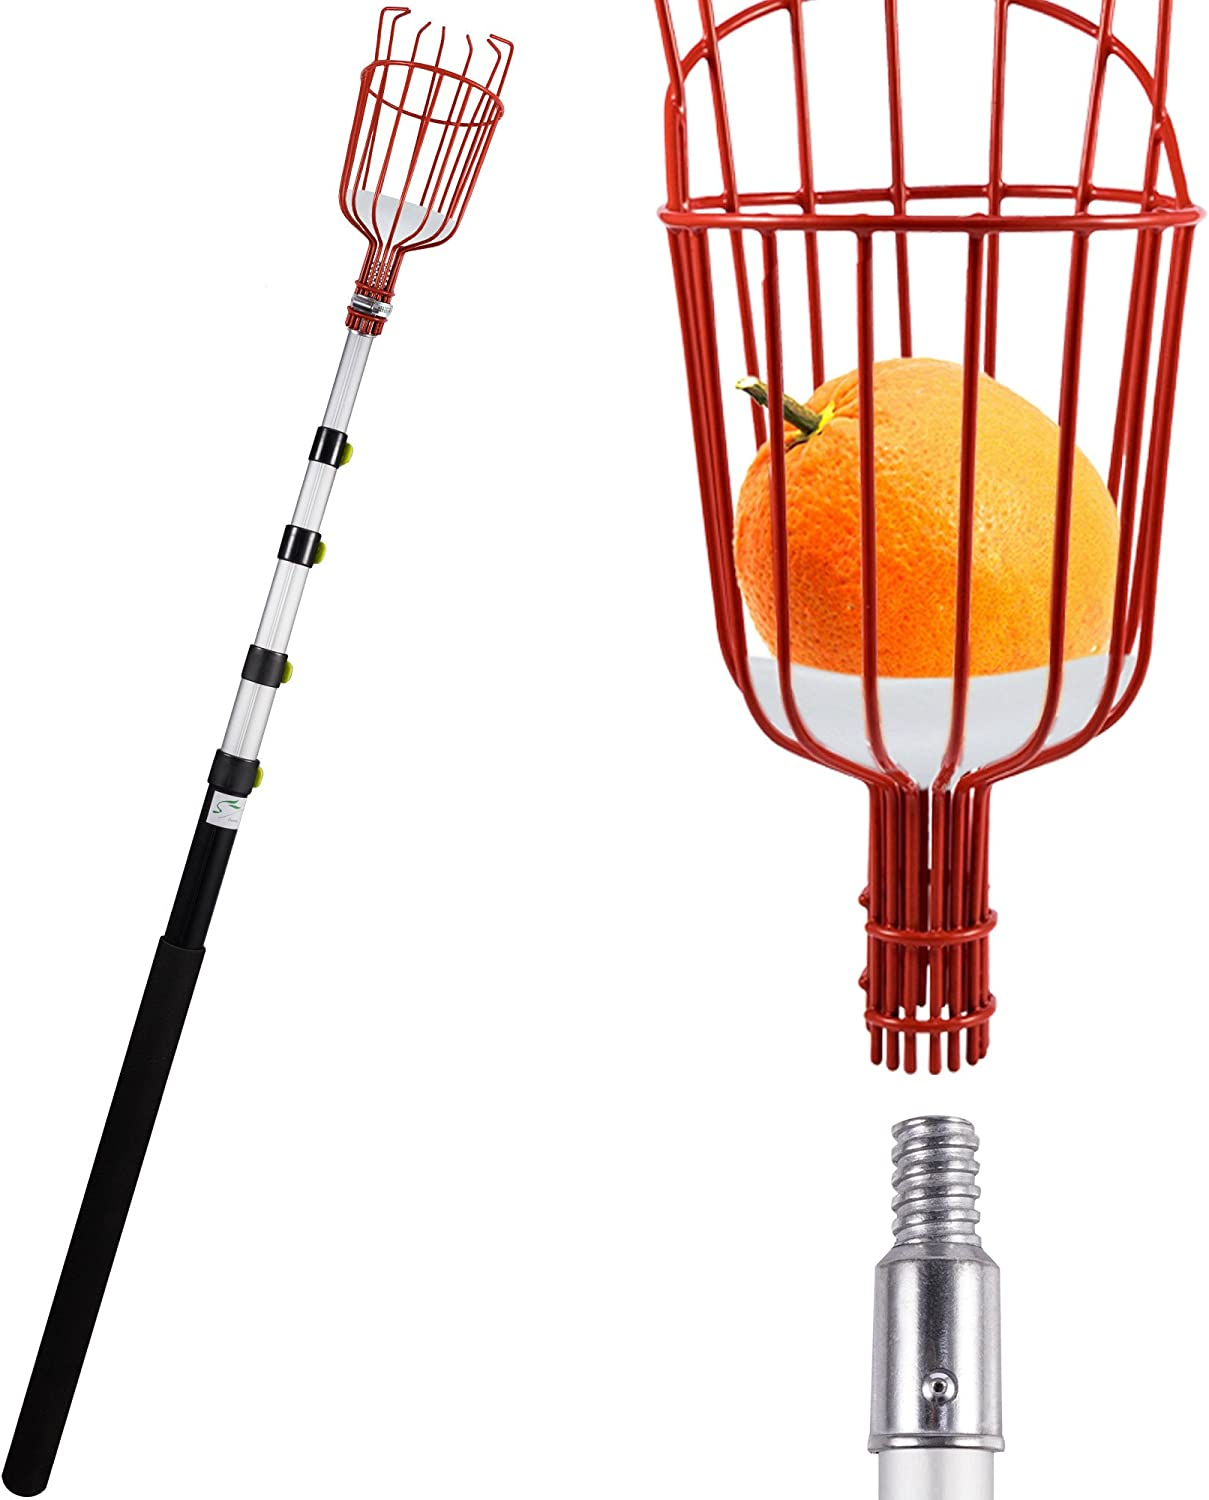 Lopunny Fruit Picker 13-foot Lightweight Telescoping Aluminum Pole with Bruise Free Basket for Apple Pear Peach harvesting